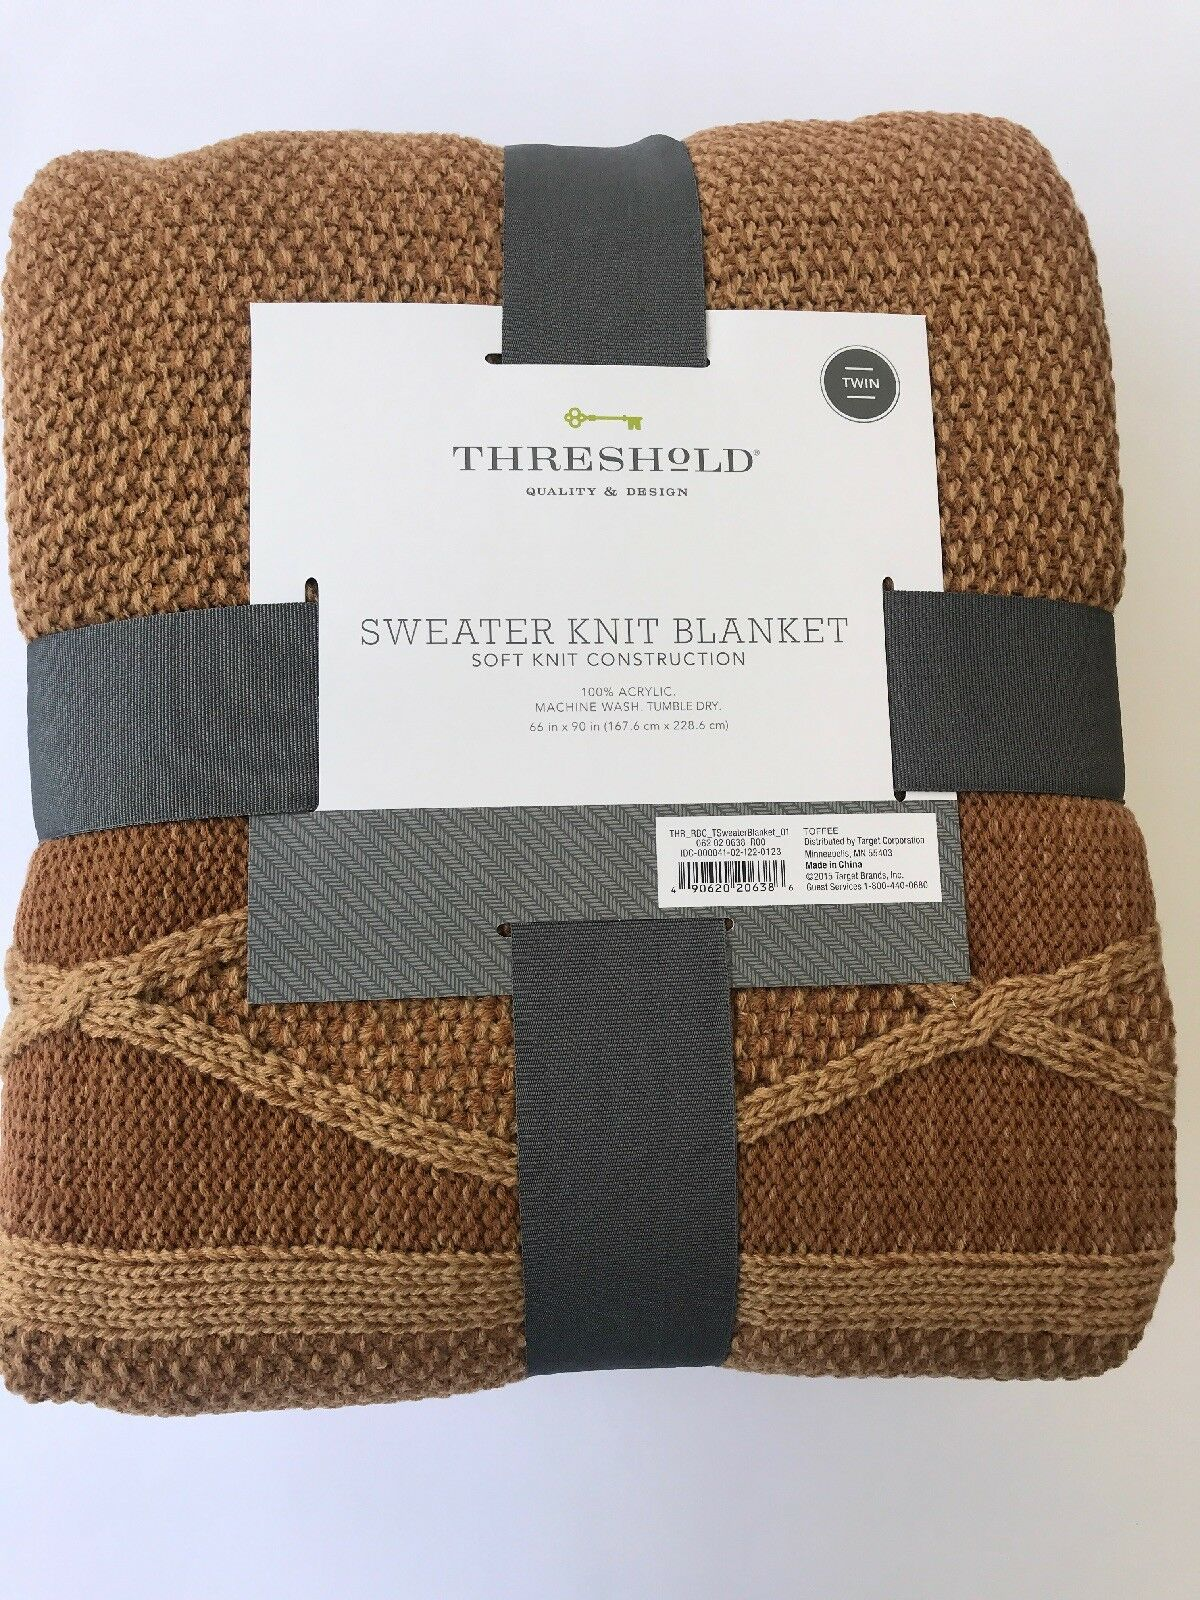 Threshold Twin Size Sweater Knit Blanket and Tan Bedding Blanket NEW  brown